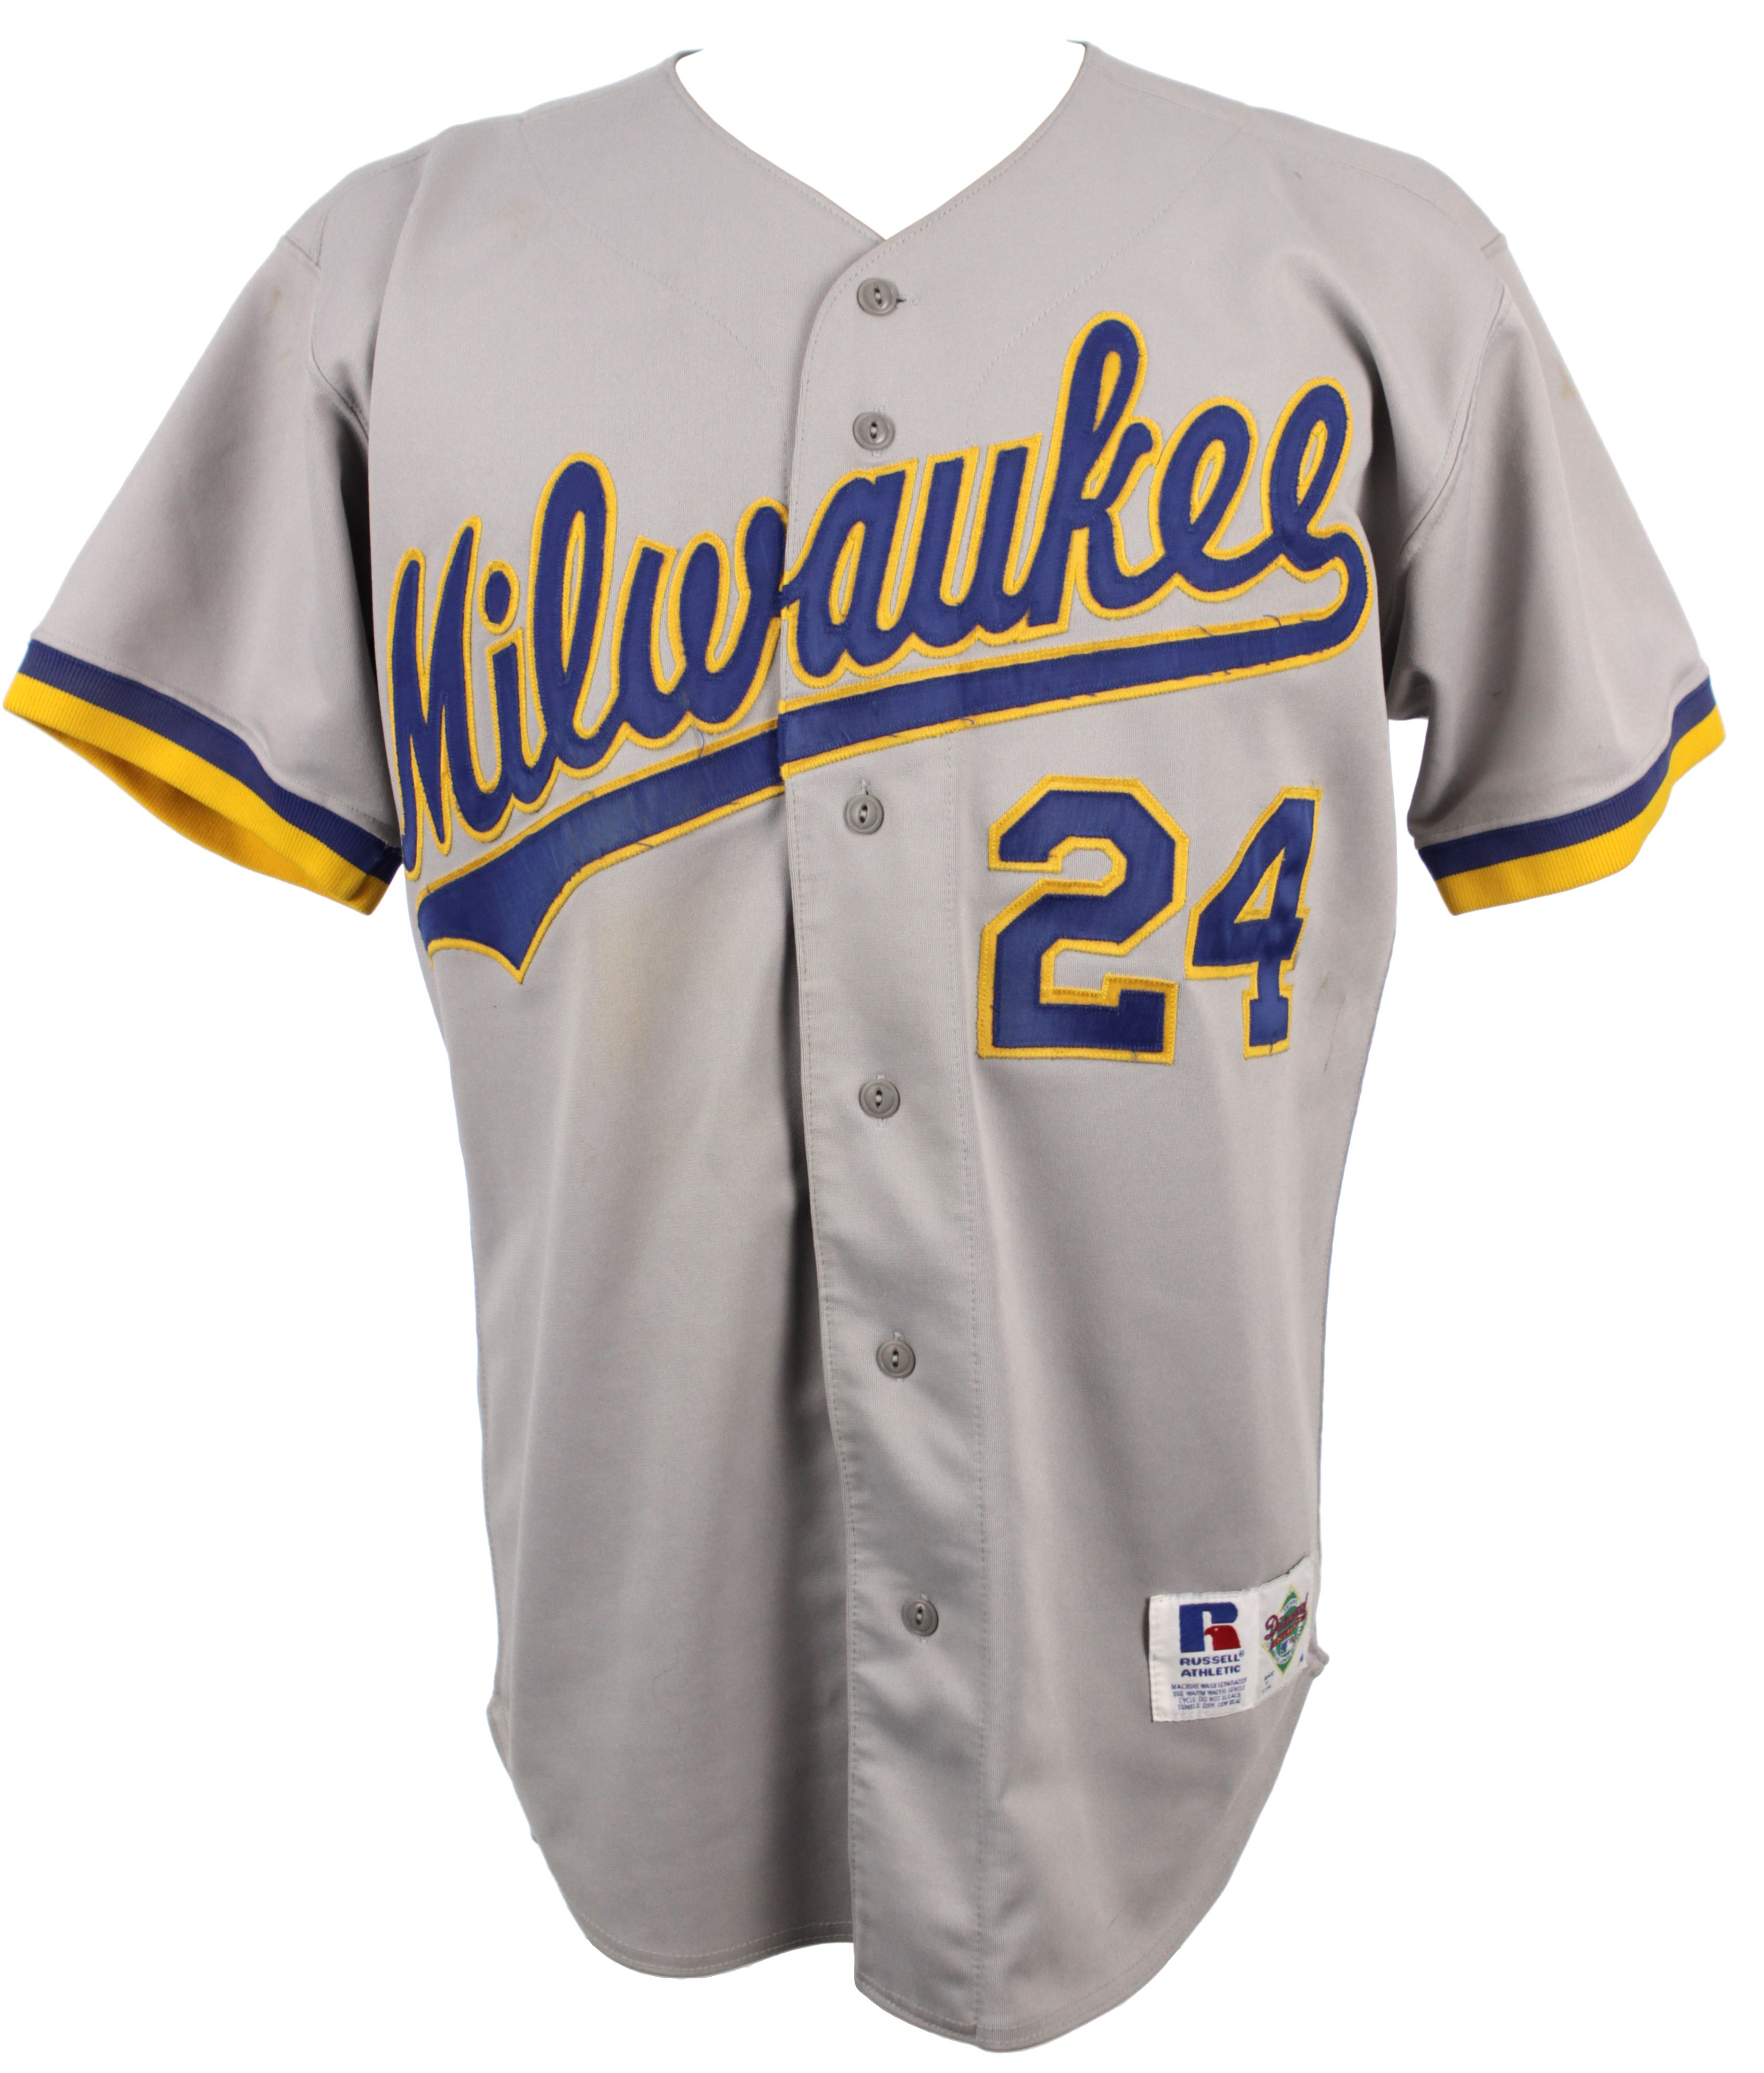 check out 5c4b4 7feb2 History Jerseys Milwaukee History Brewers Milwaukee Jerseys ...